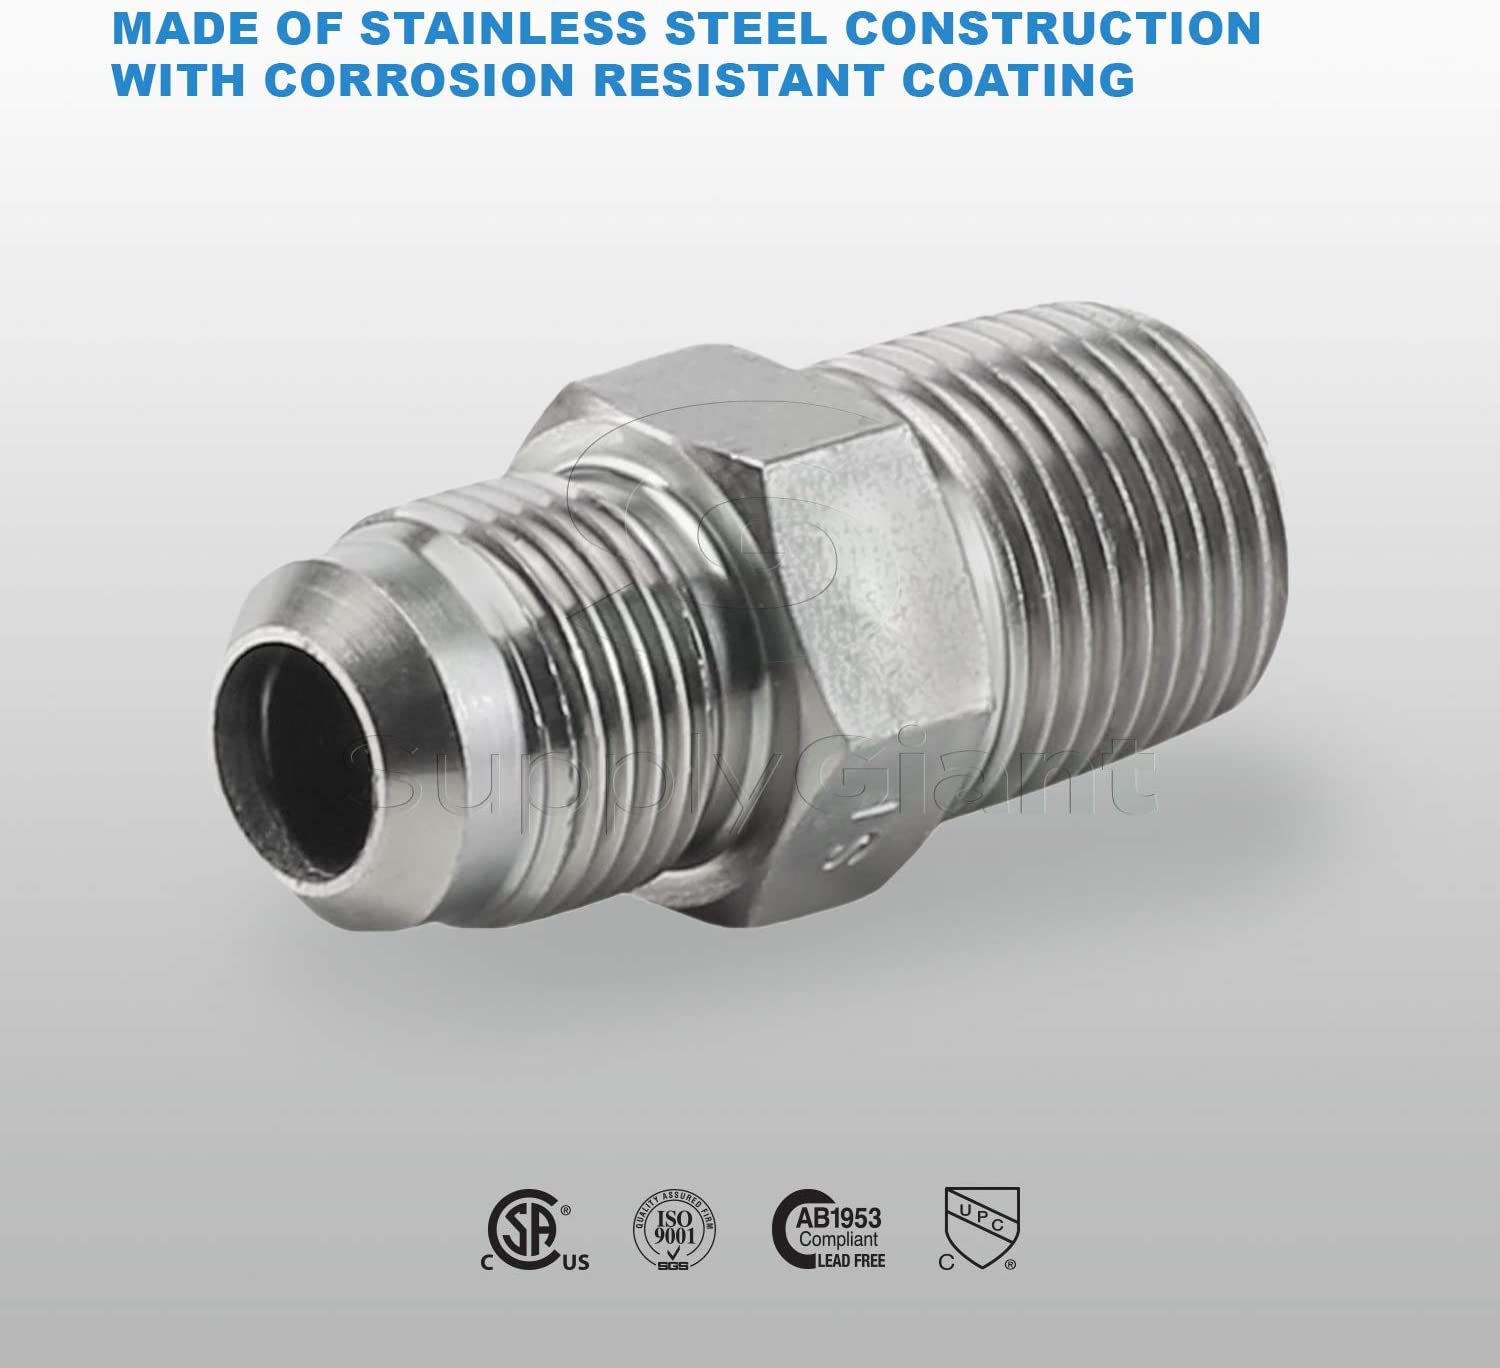 Flextron FTGF-12M12 1//2 Outer Diameter Flare Thread to 1//2 Mip Gas Connector Adapter Fitting